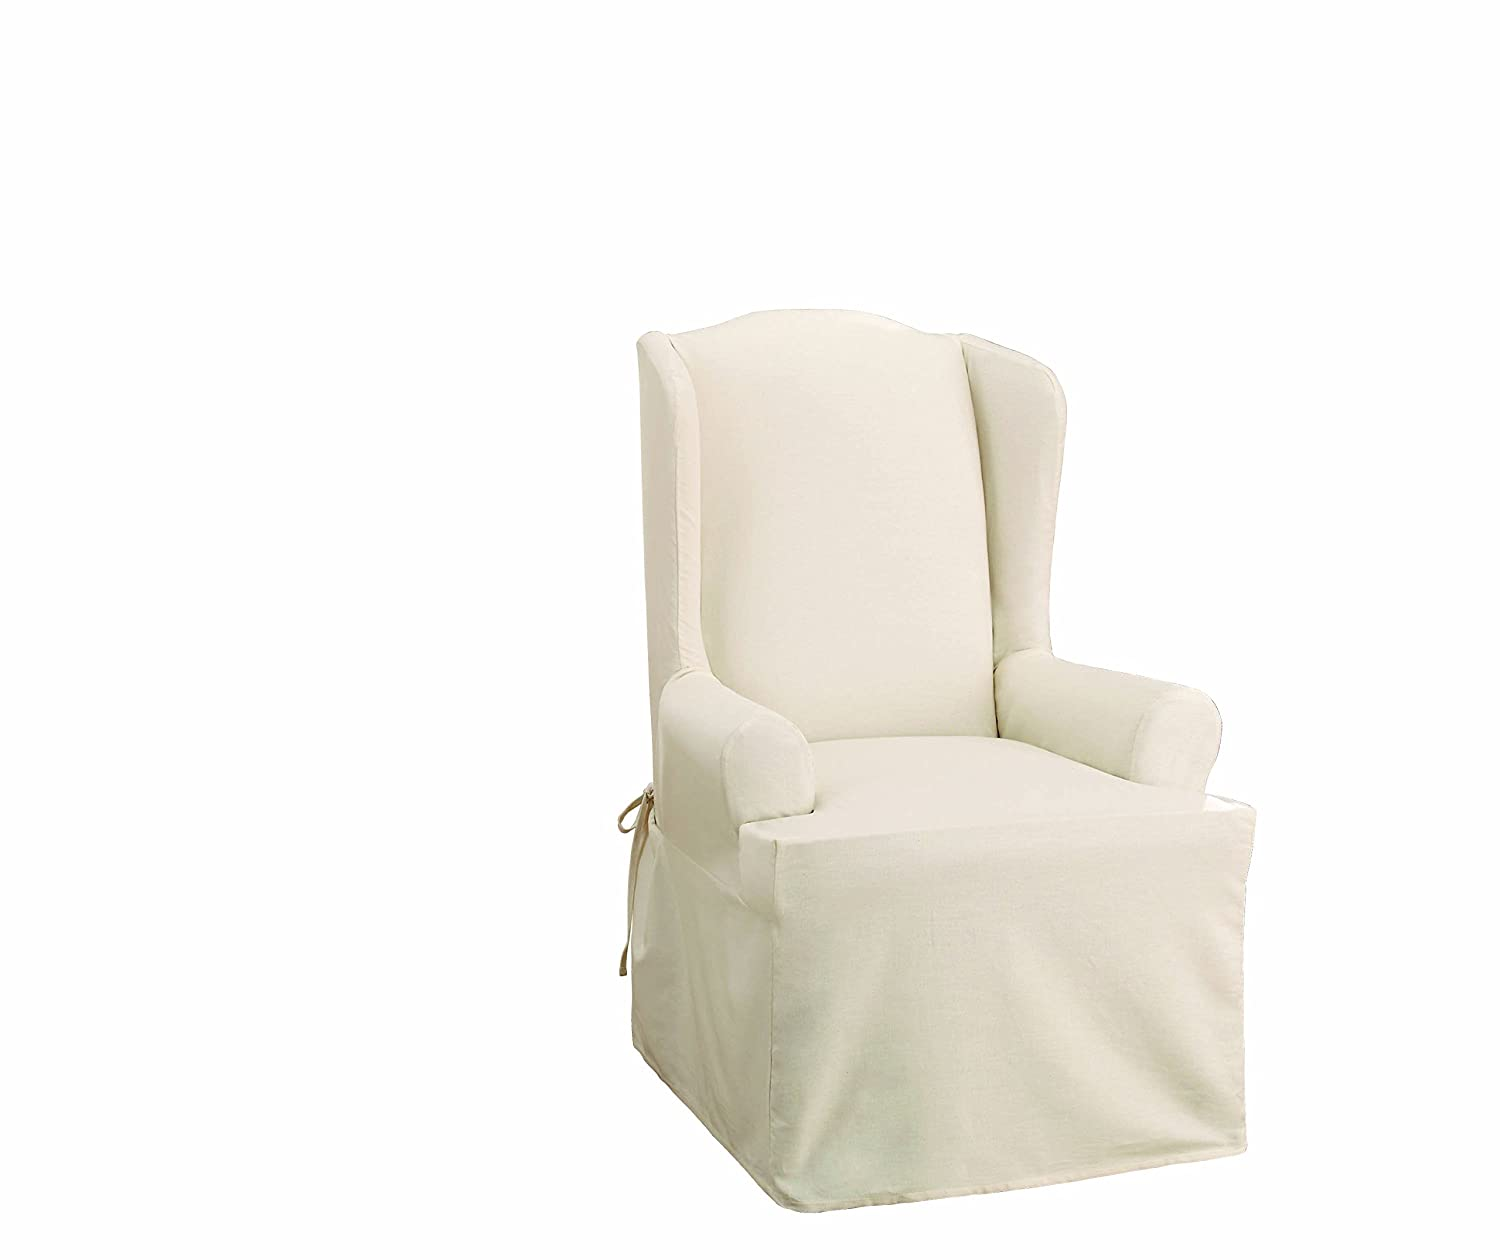 Amazon.com: Sure Fit Cotton Duck Folding Chair Slipcover, Linen: Home U0026  Kitchen